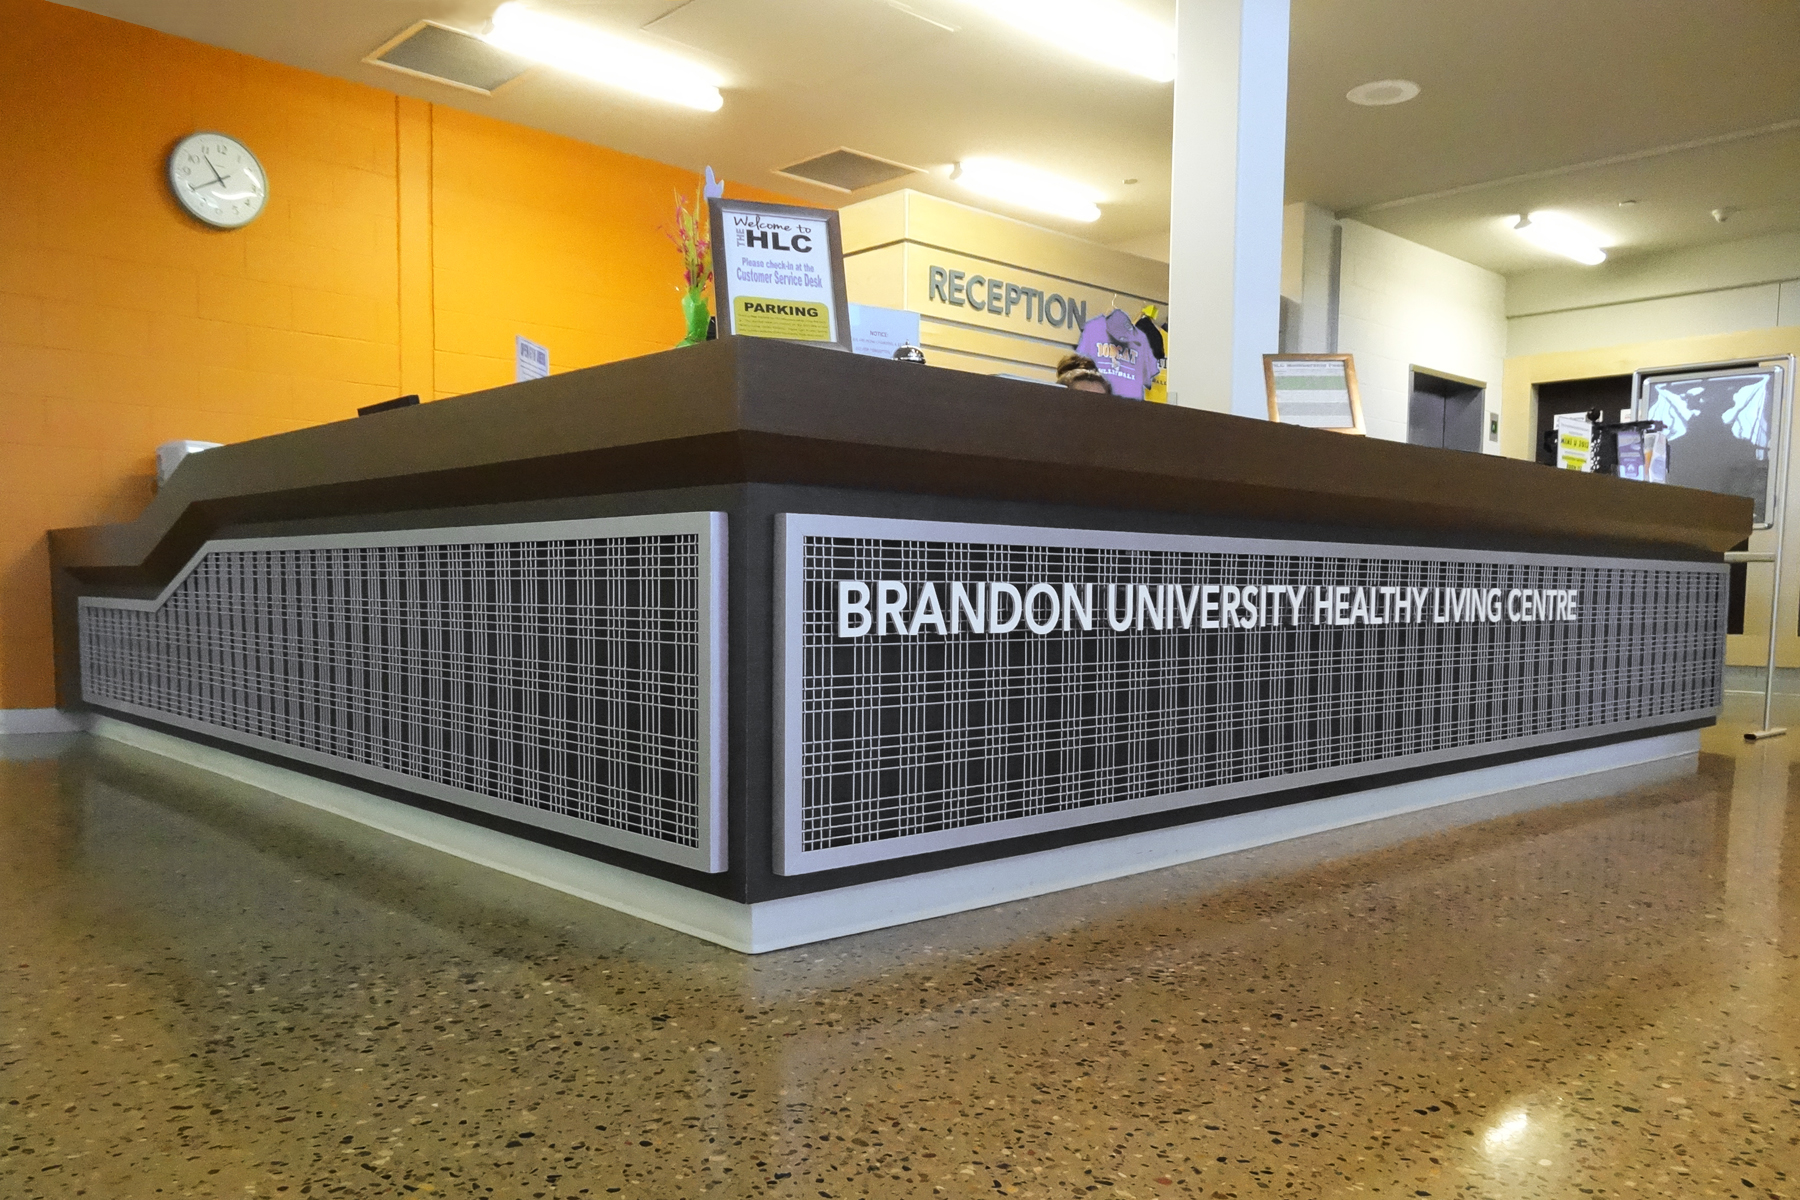 Banker Wire angle iron frames with a powder coat finish make a statement as you enter this university building.